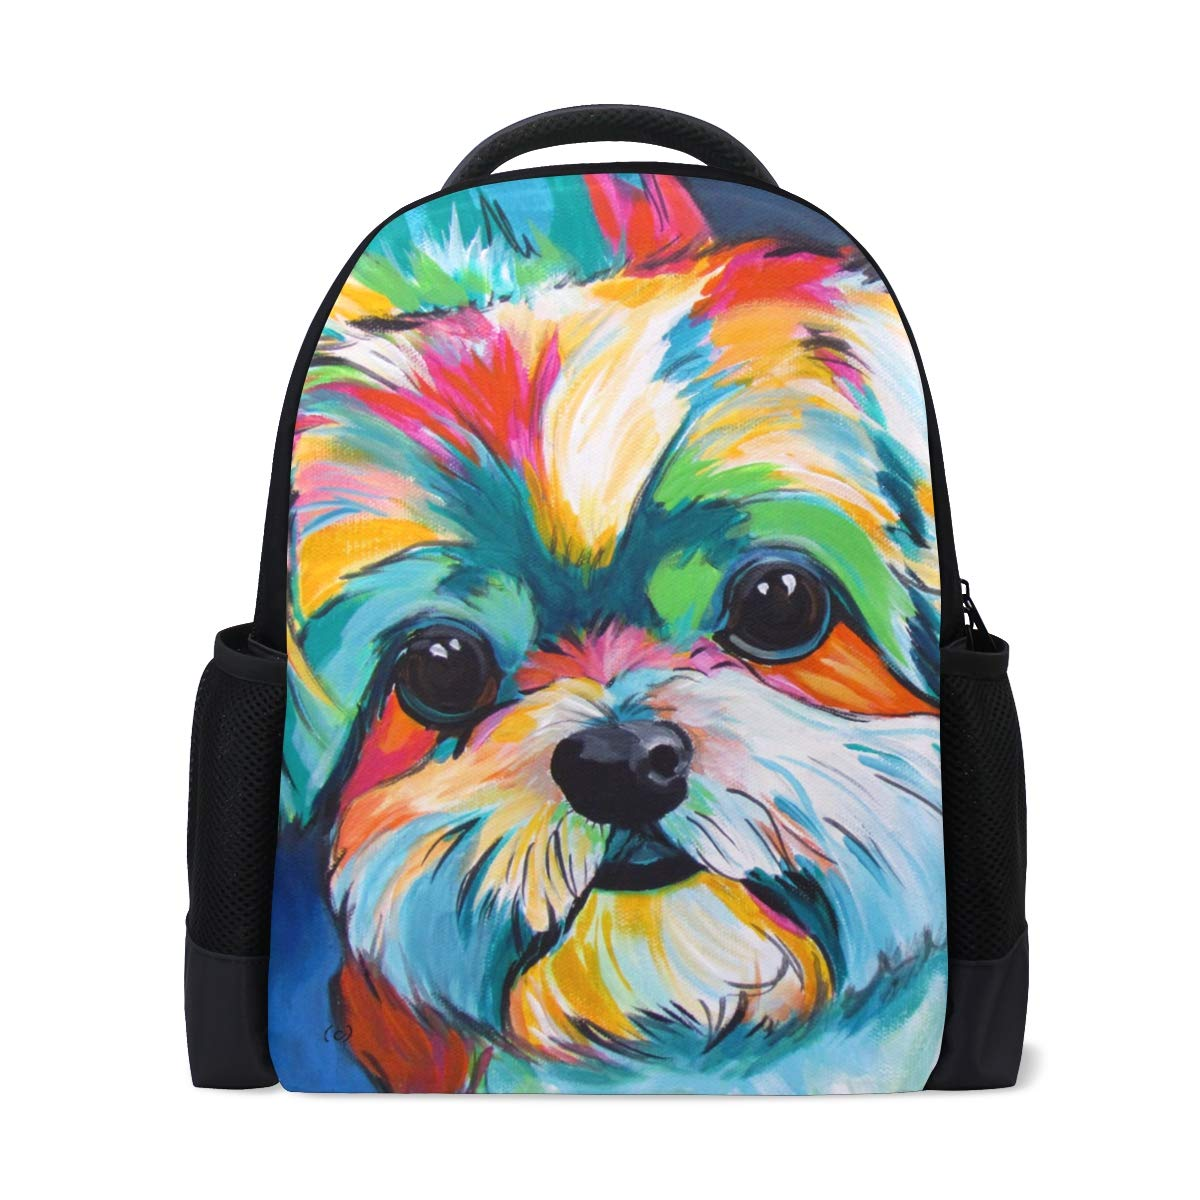 Amazon.com  Most Durable Lightweight Travel Water Resistant School Computer  Backpack 4-Chihuahua-Dean-Russo Large Resistant Bookbag  Computers    Accessories 9534a42f642ab